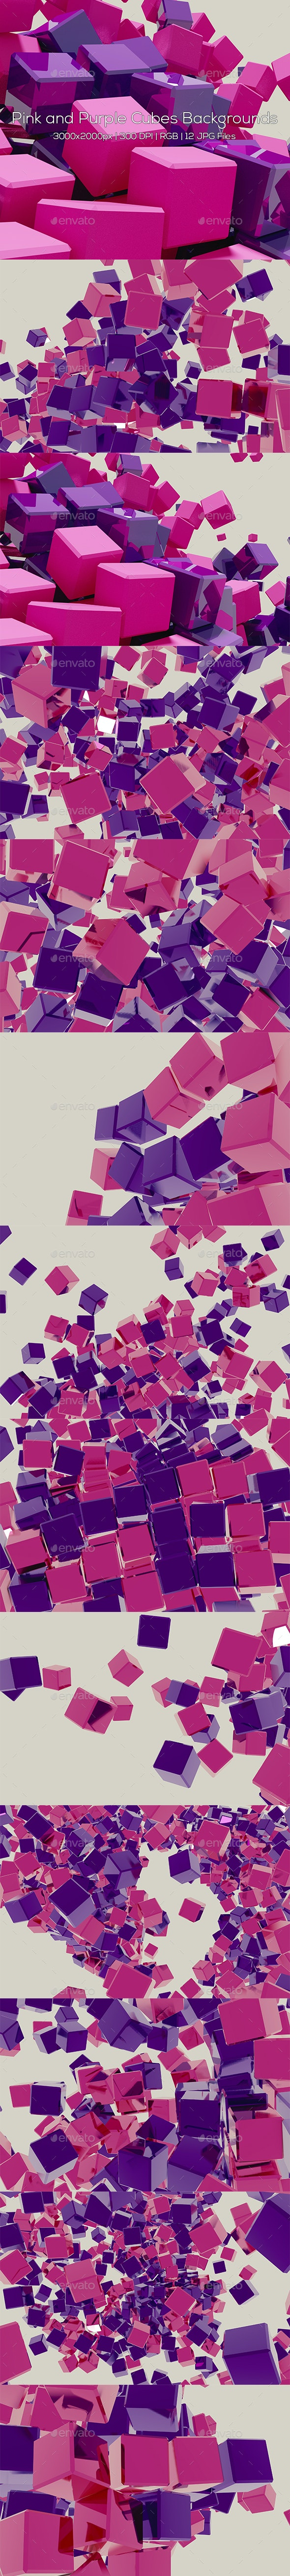 Pink and Purple Cubes Backgrounds - Abstract Backgrounds